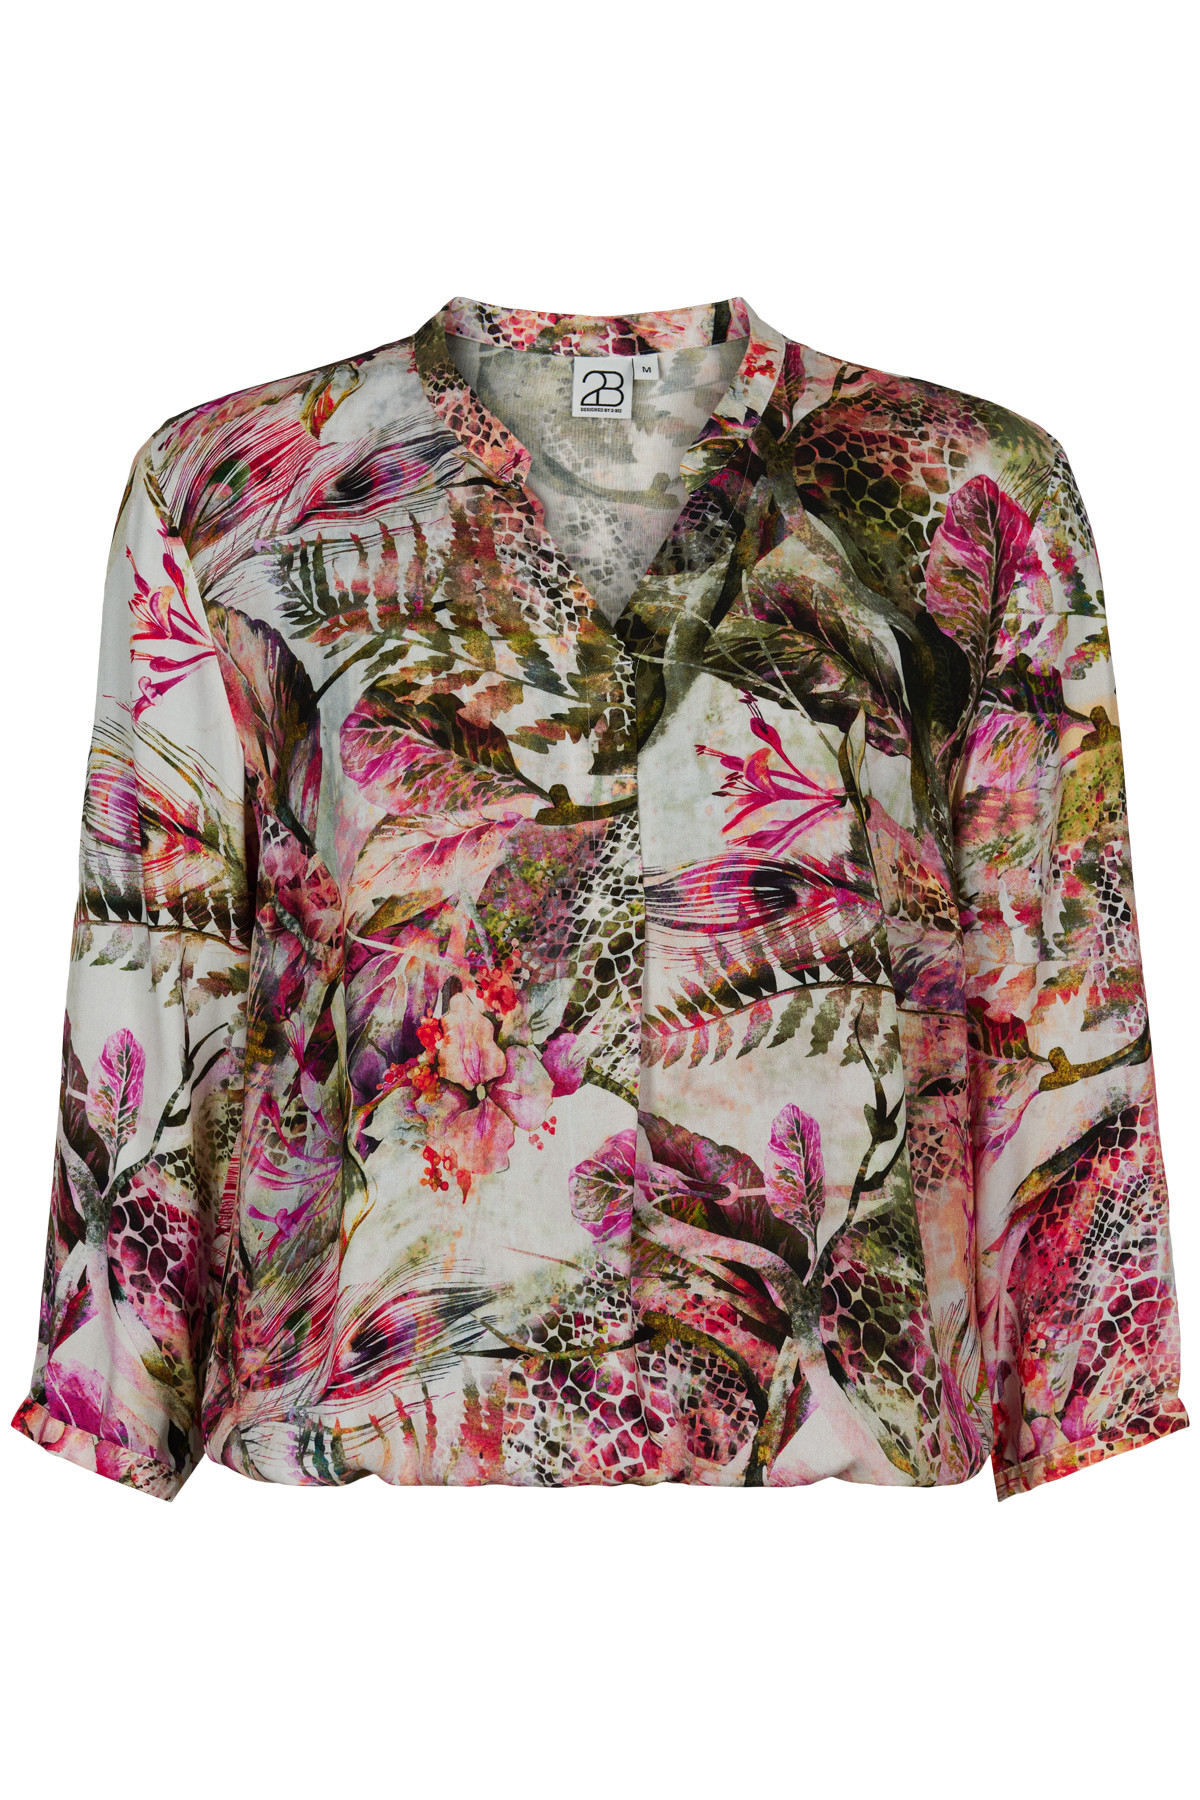 Image of 2BIZ HELLEN BLUSE 43915 (Multi, XL)